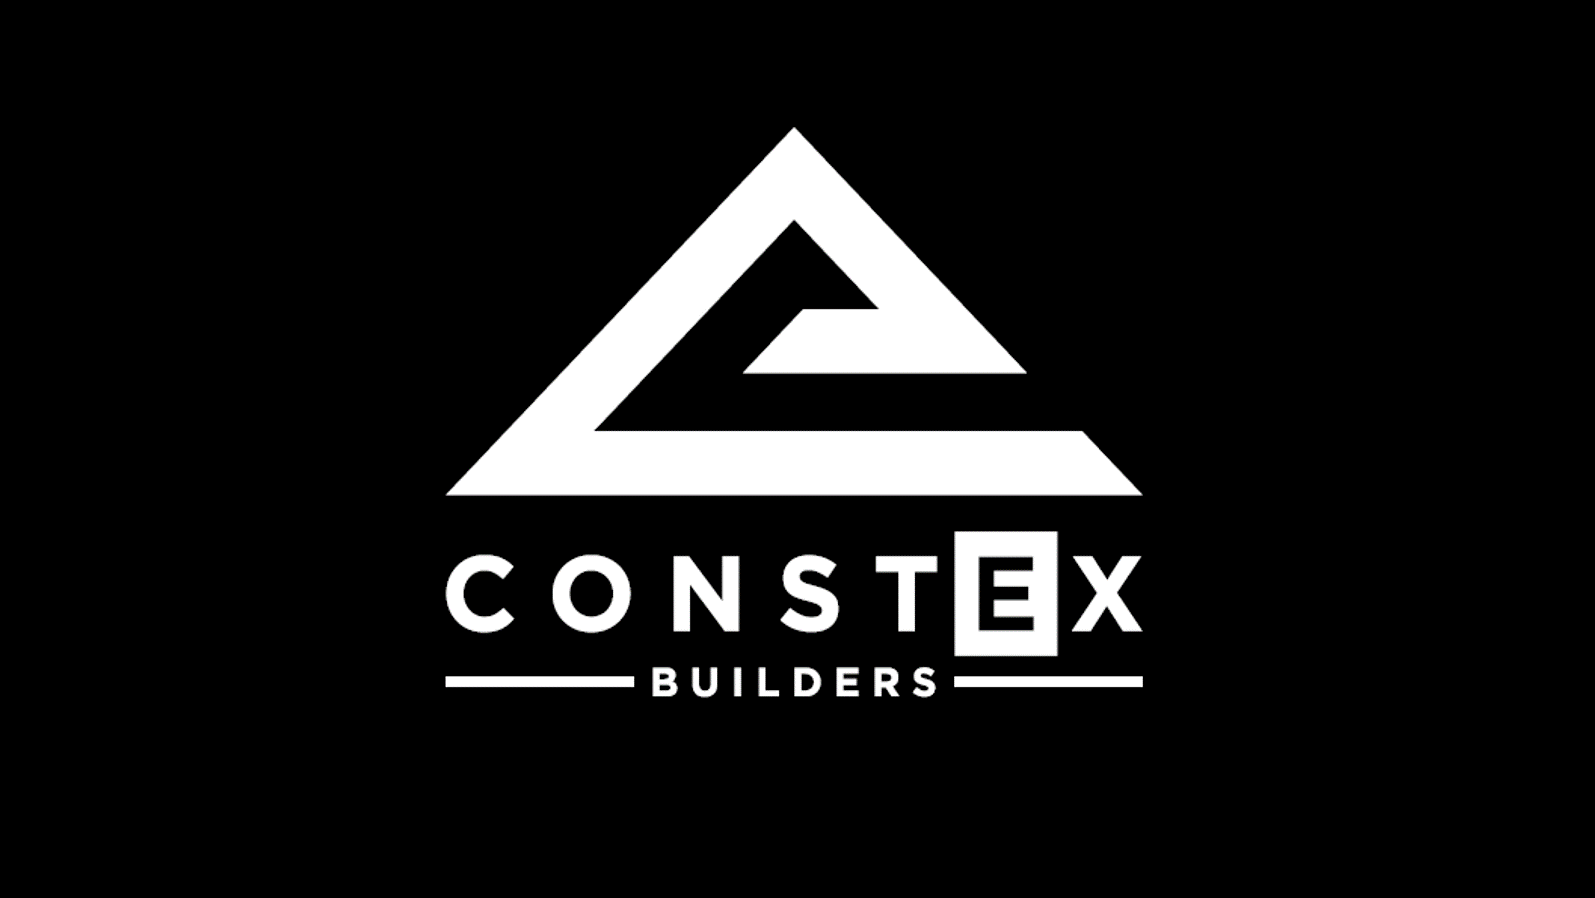 Constex Builders